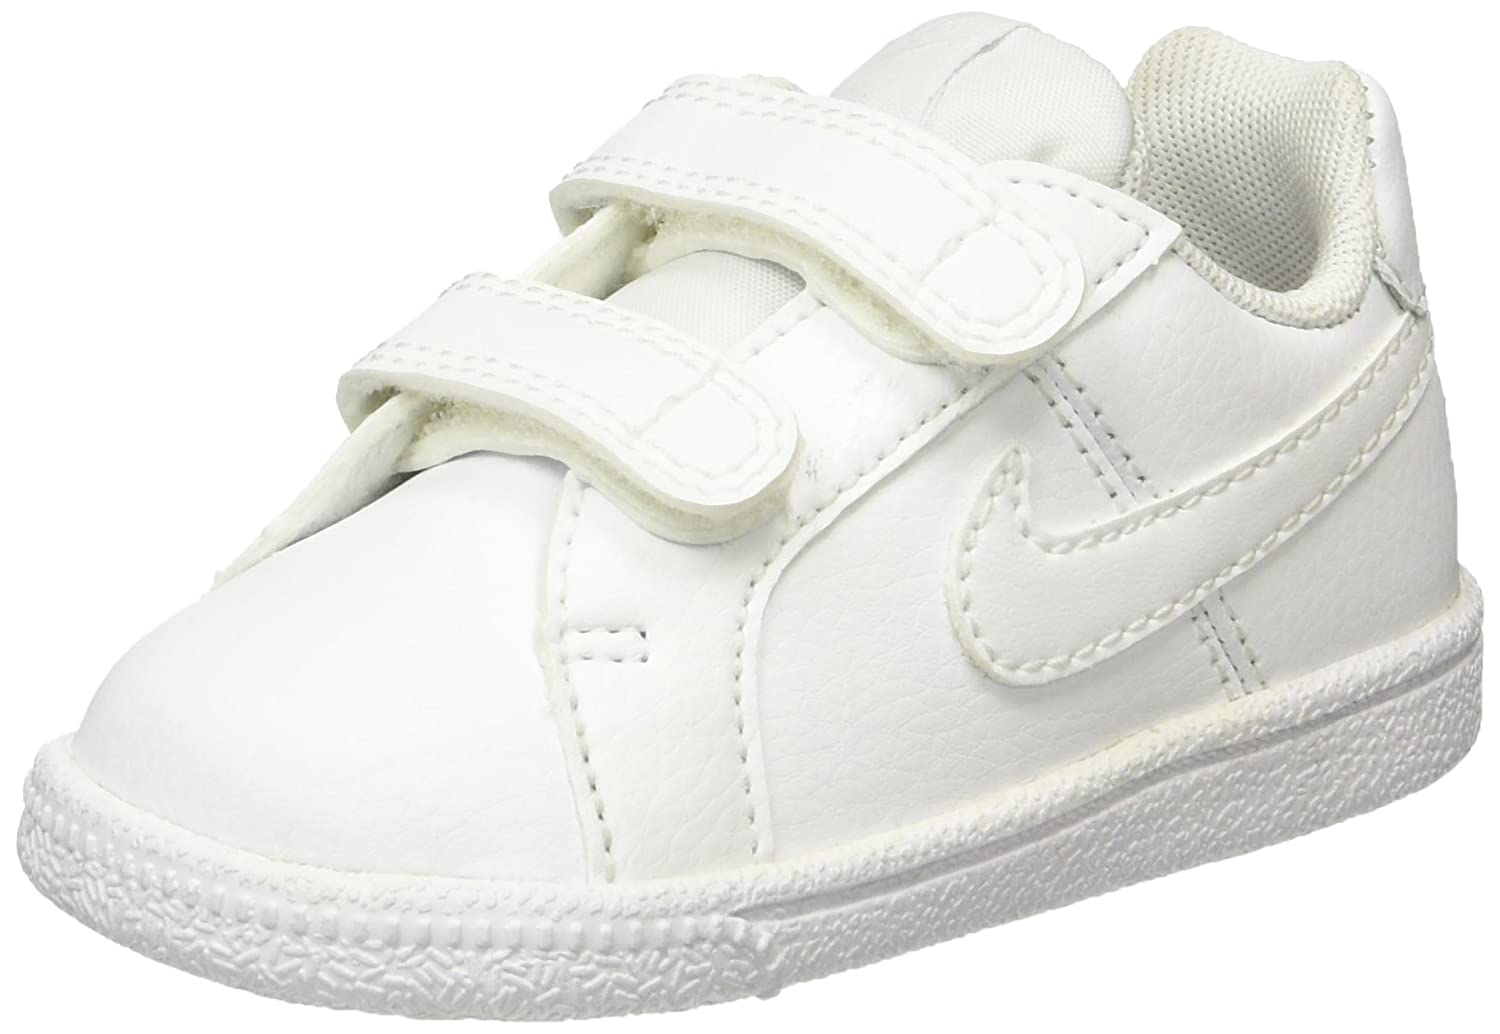 NIKE Unisex Kids Court Royale (TDV) Gymnastics Shoes 833537